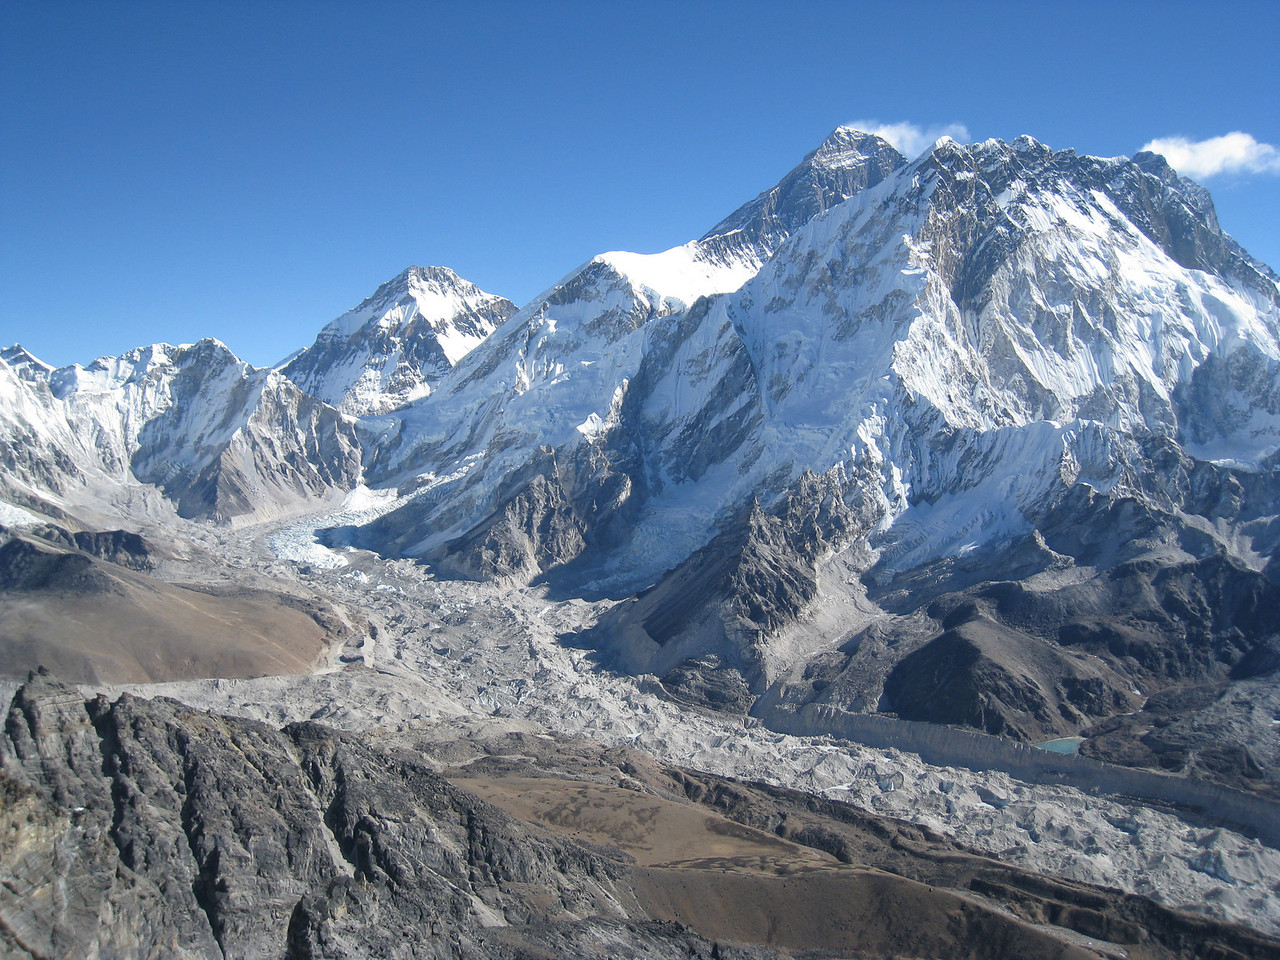 Another breathtaking view of Everest and the Khumbu from the summit of Lobuche East (6119m)